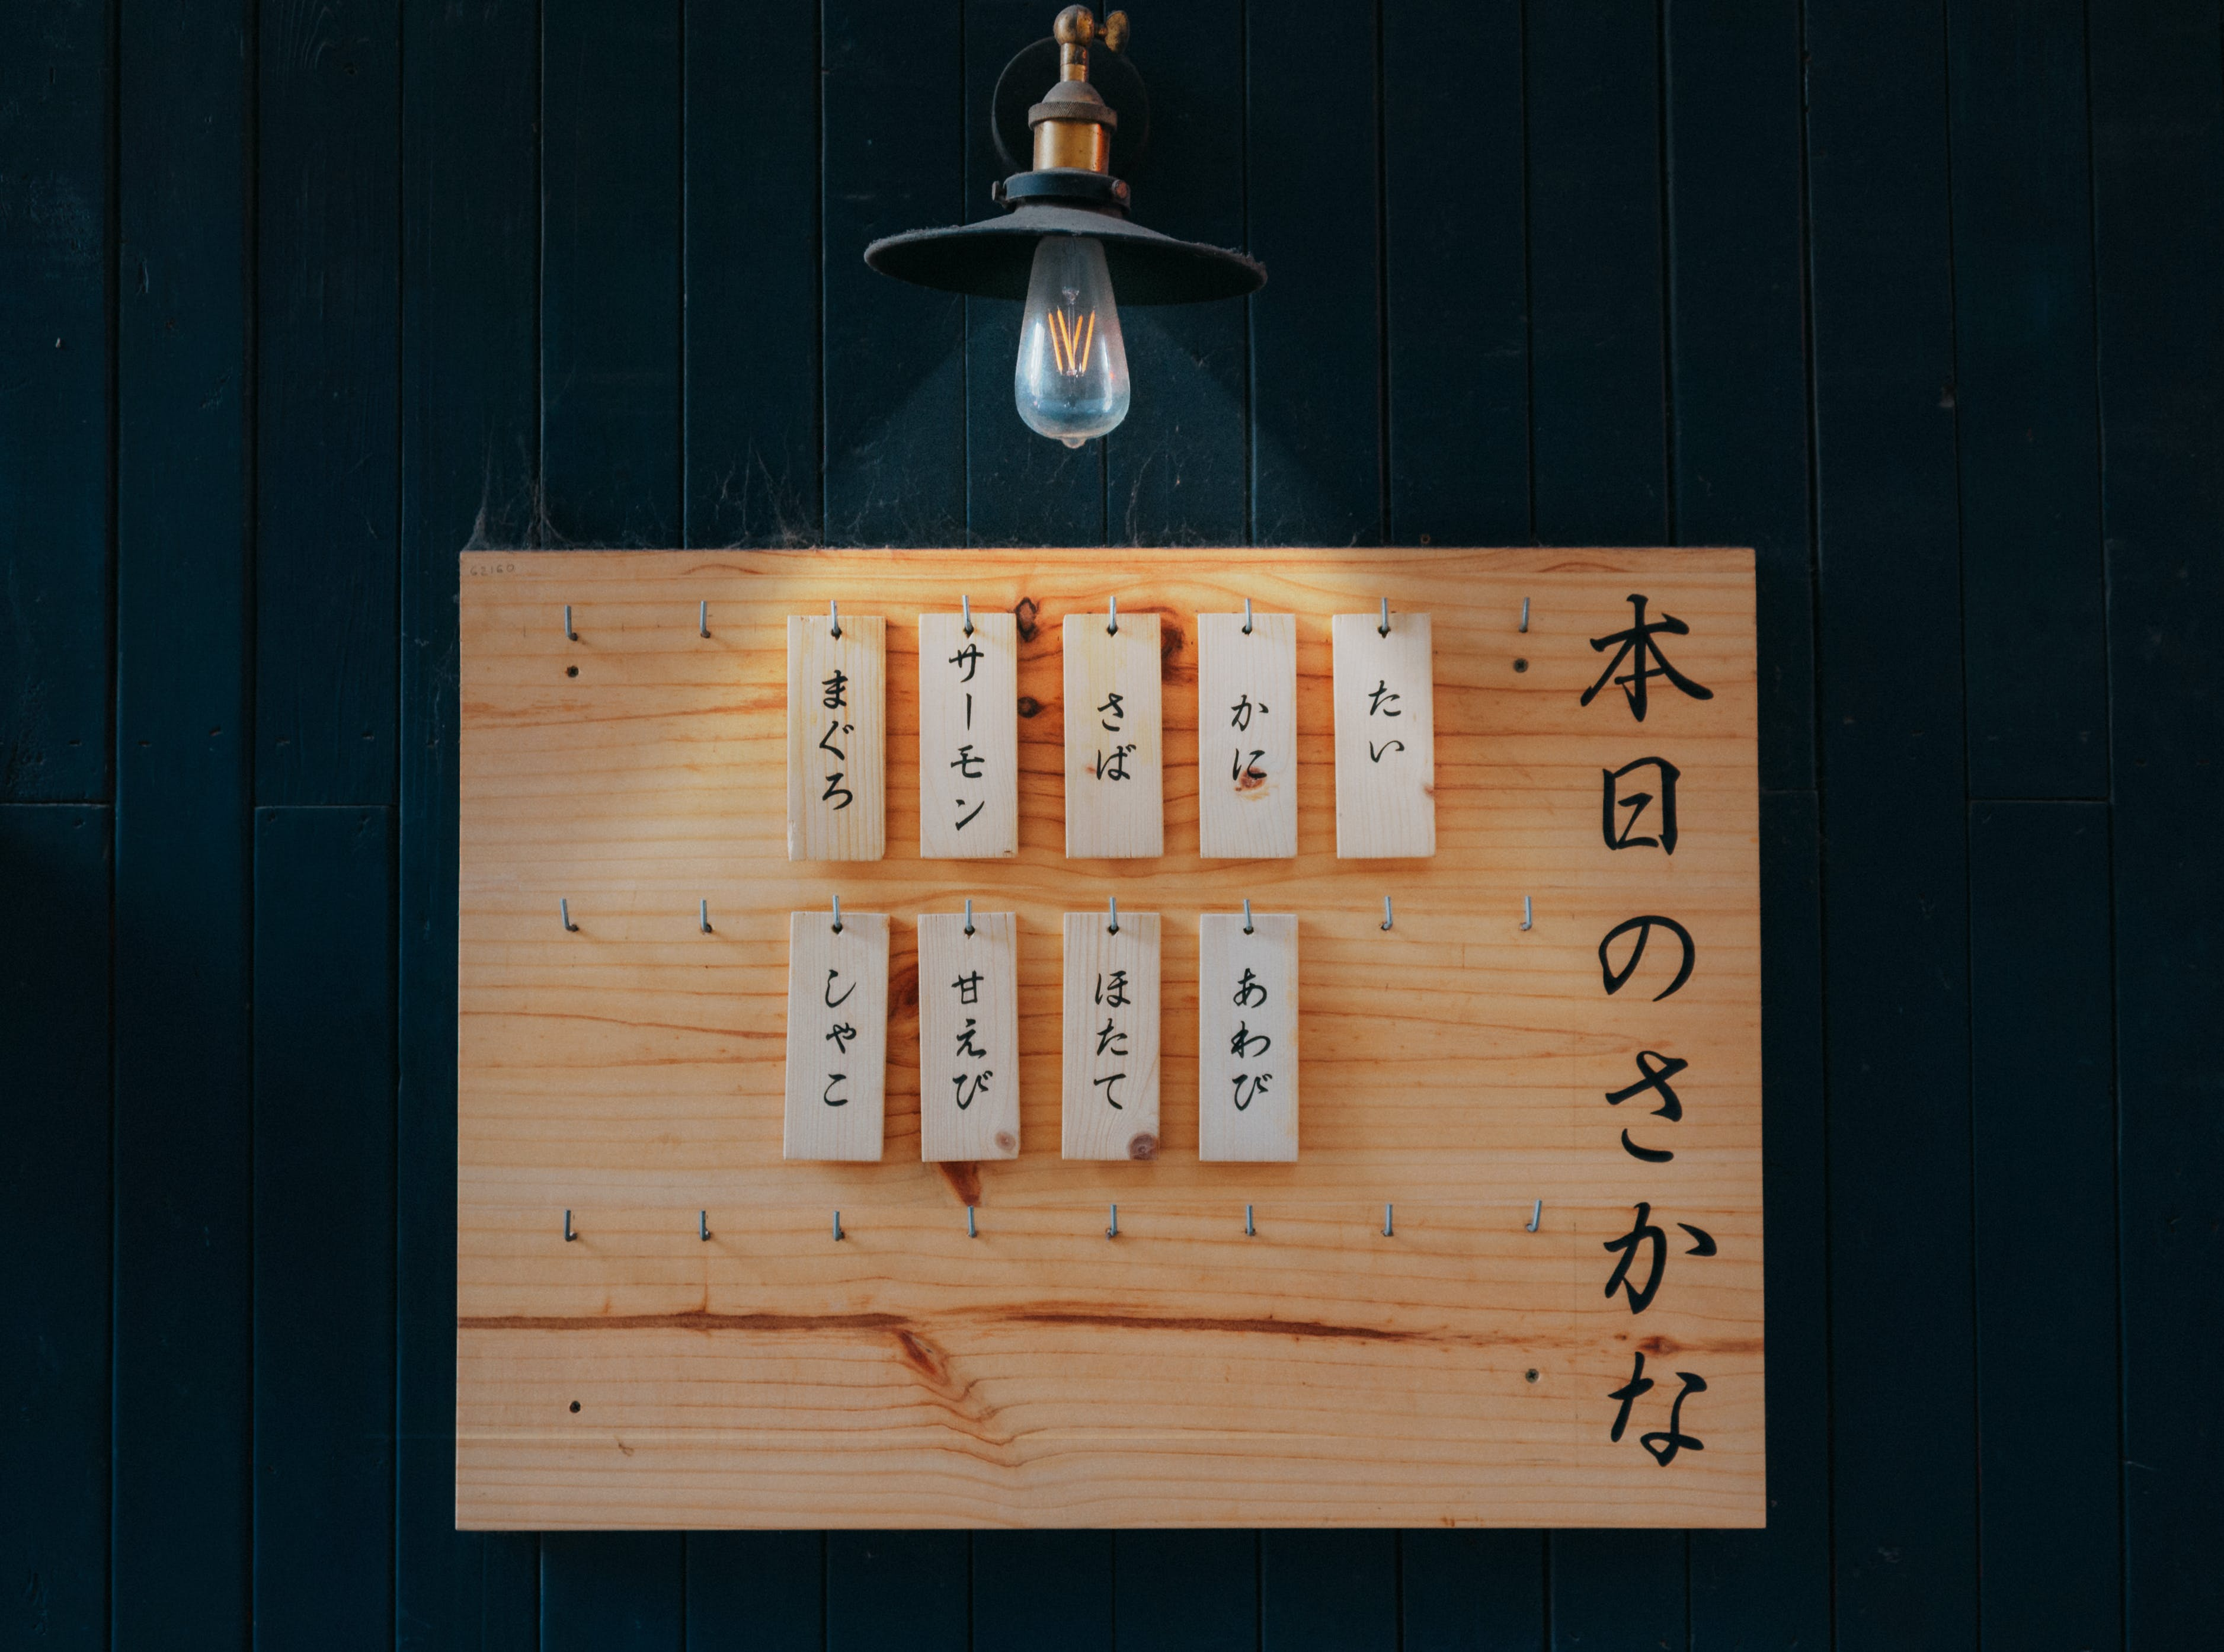 Kanji Printed Tags Hanged on Brown Wooden Board Lighted by Pendant Lamp